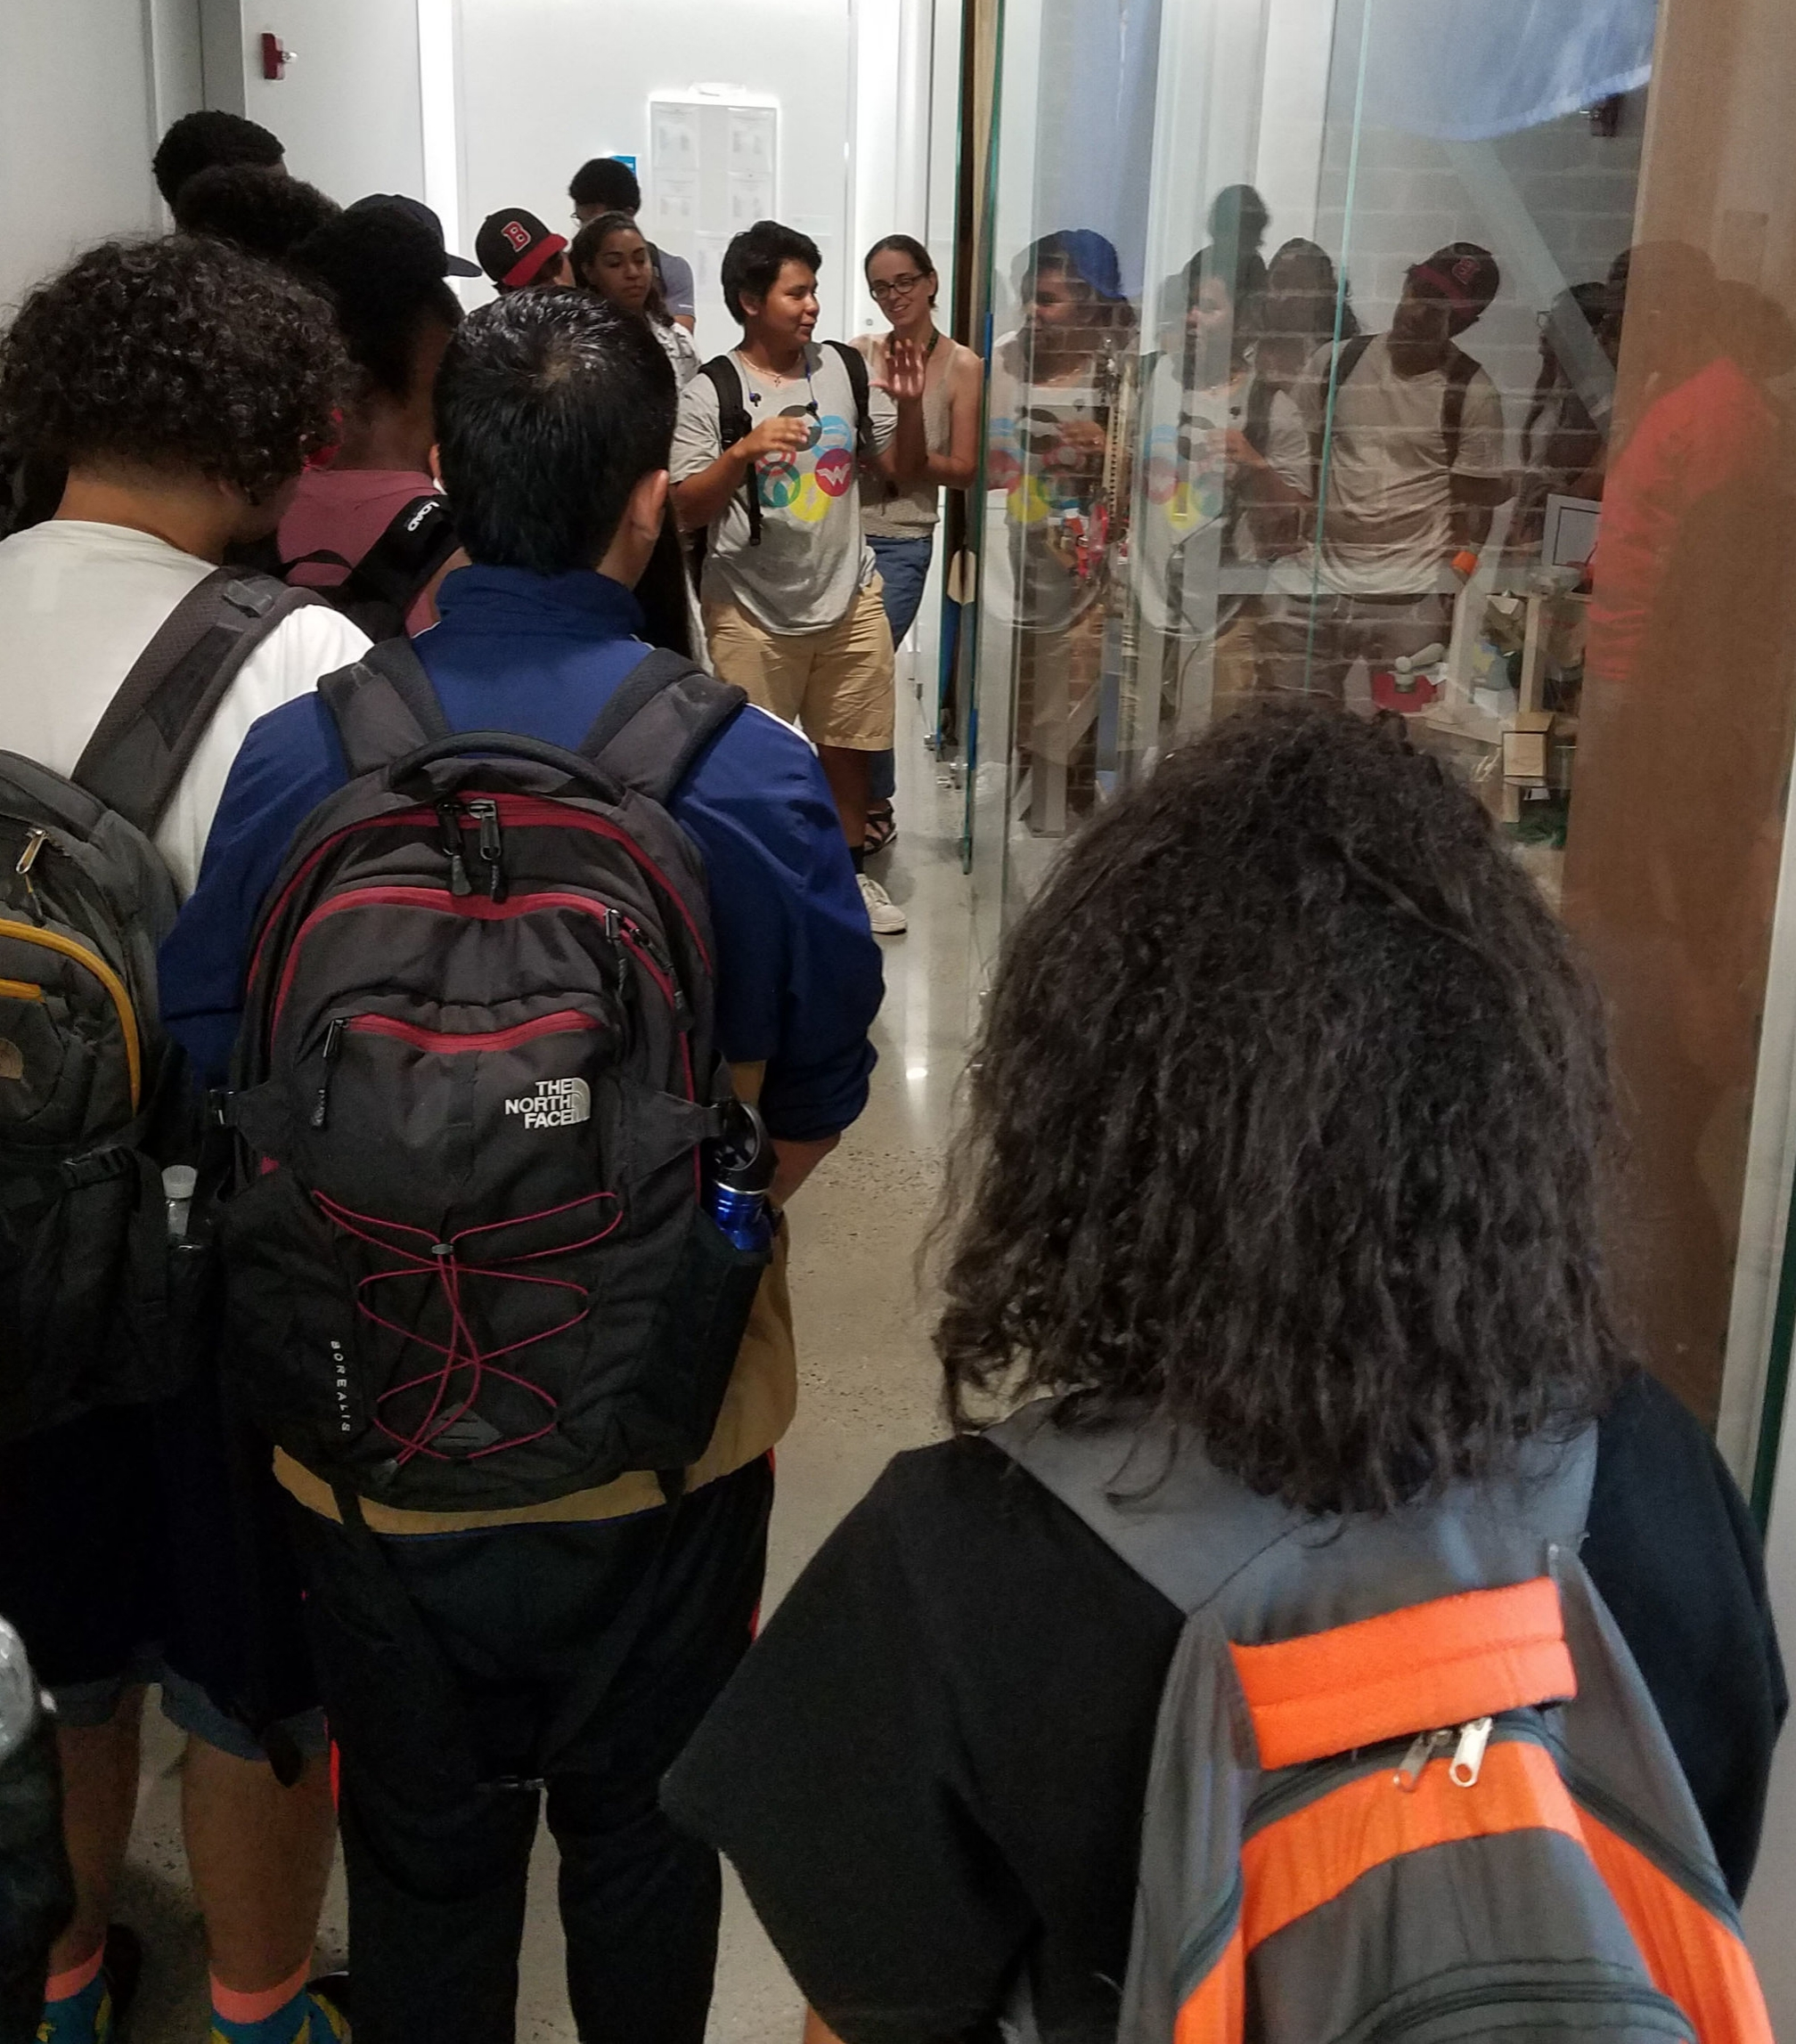 Teo shows his kinetic sculpture to other BEAM 11th and 12th graders during a college tour of Cooper Union.